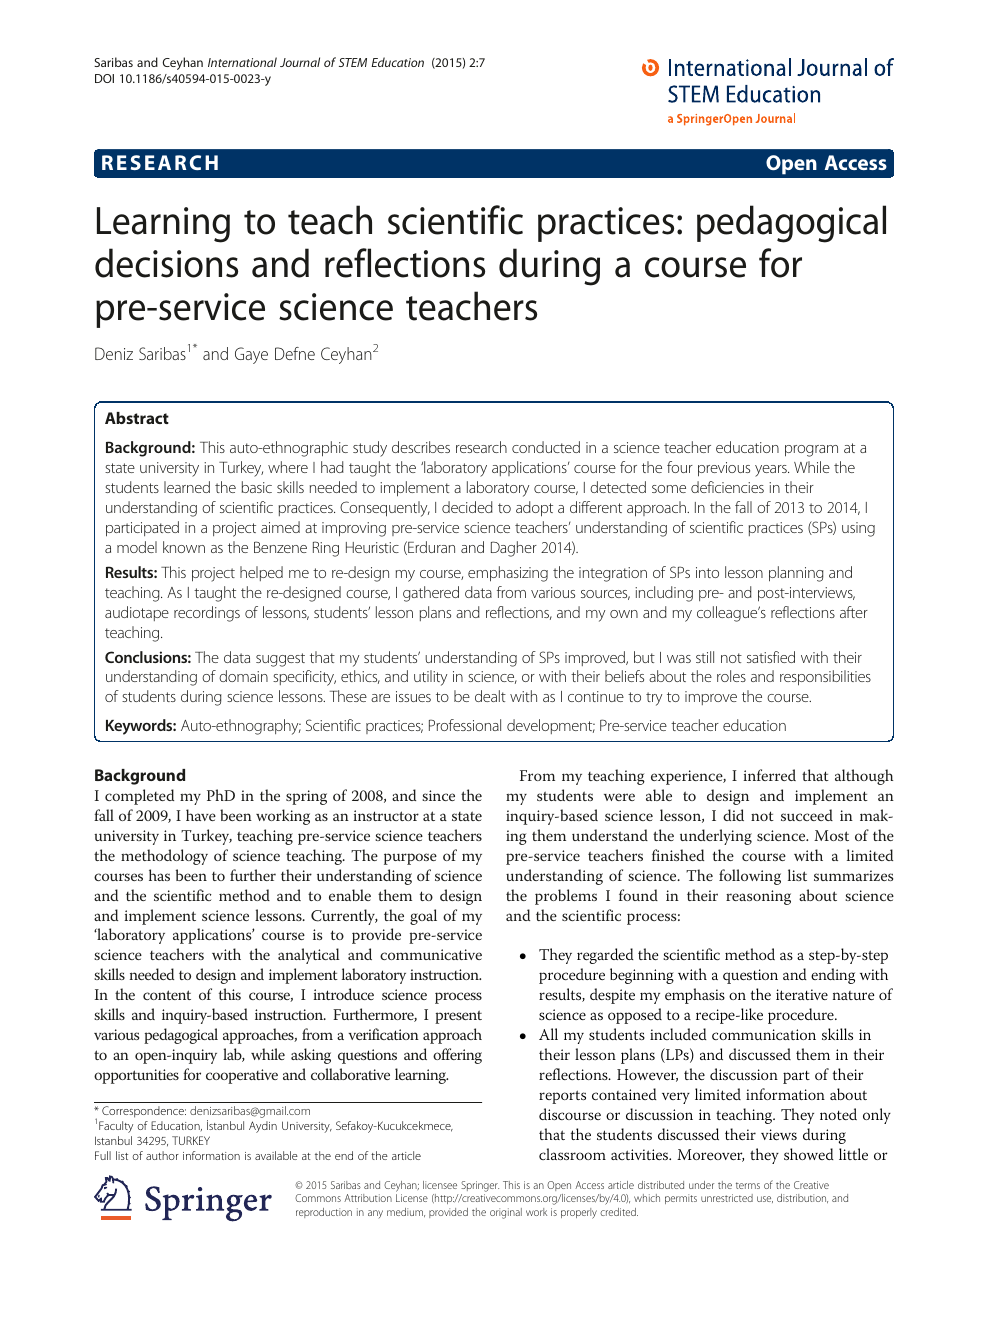 Learning To Teach Scientific Practices Pedagogical Decisions And Reflections During A Course For Pre Service Science Teachers Topic Of Research Paper In Educational Sciences Download Scholarly Article Pdf And Read For Free